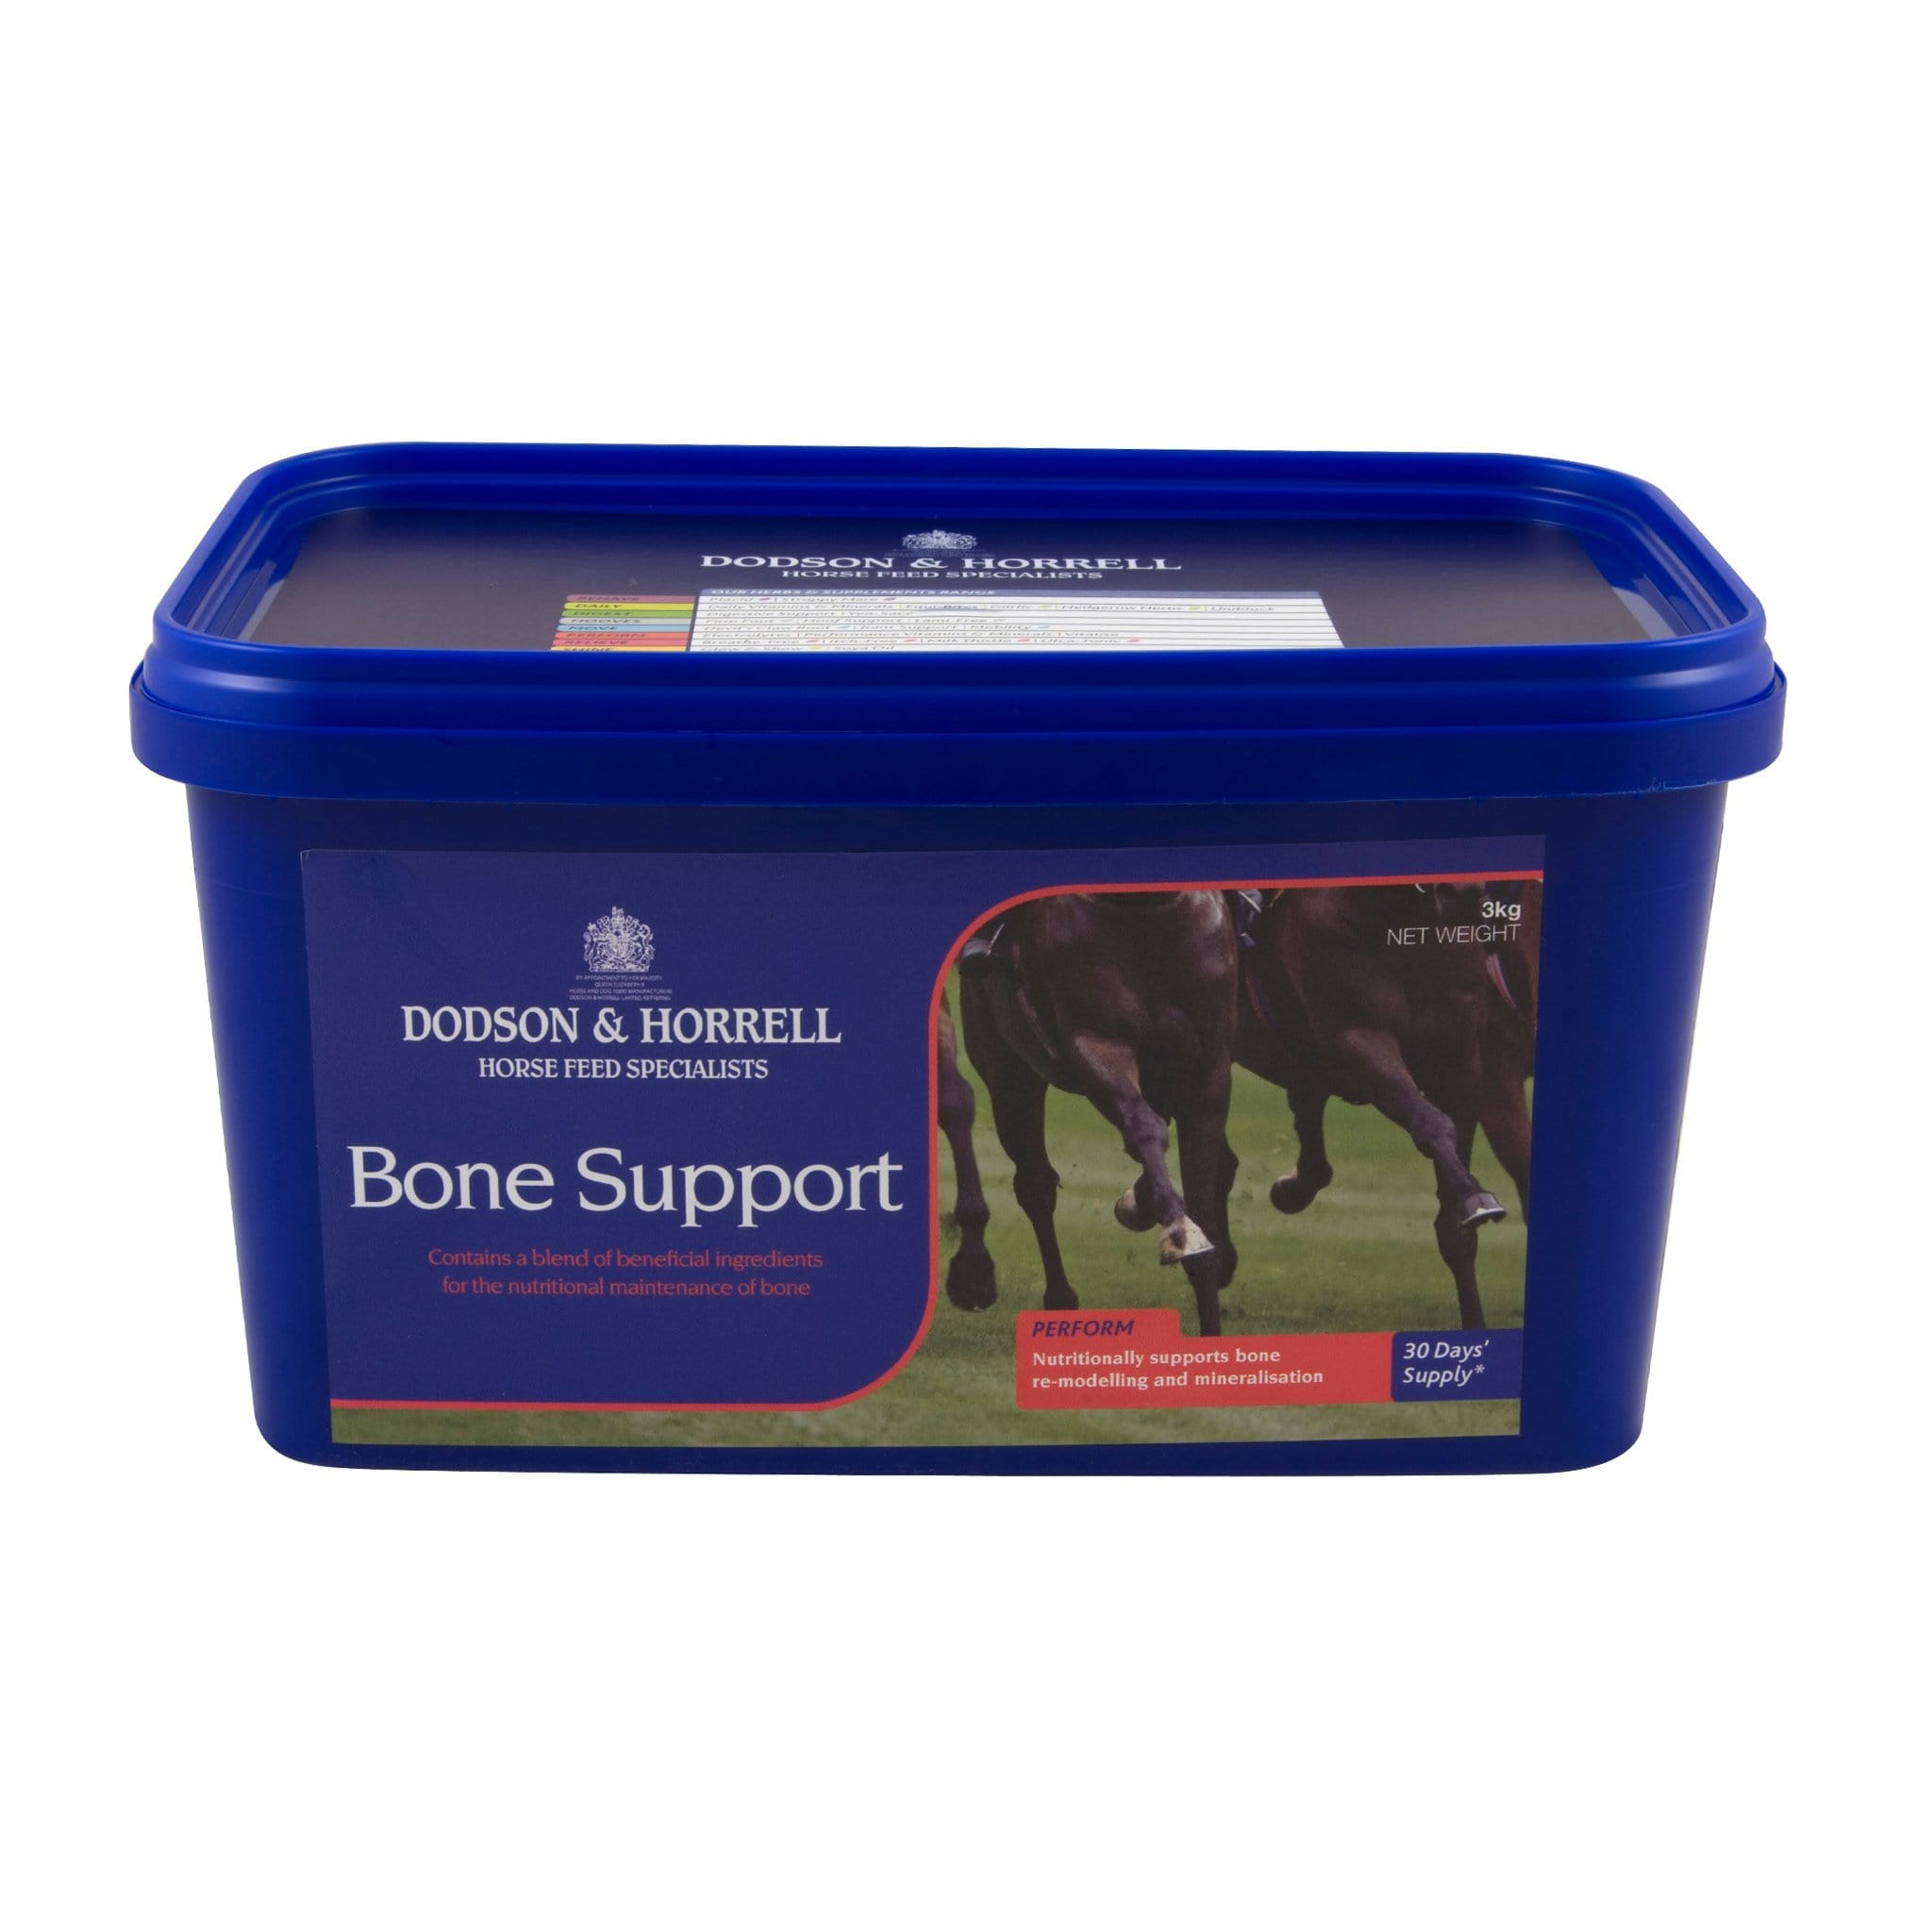 Dodson and Horrell Bone Support DHL0990 3kg